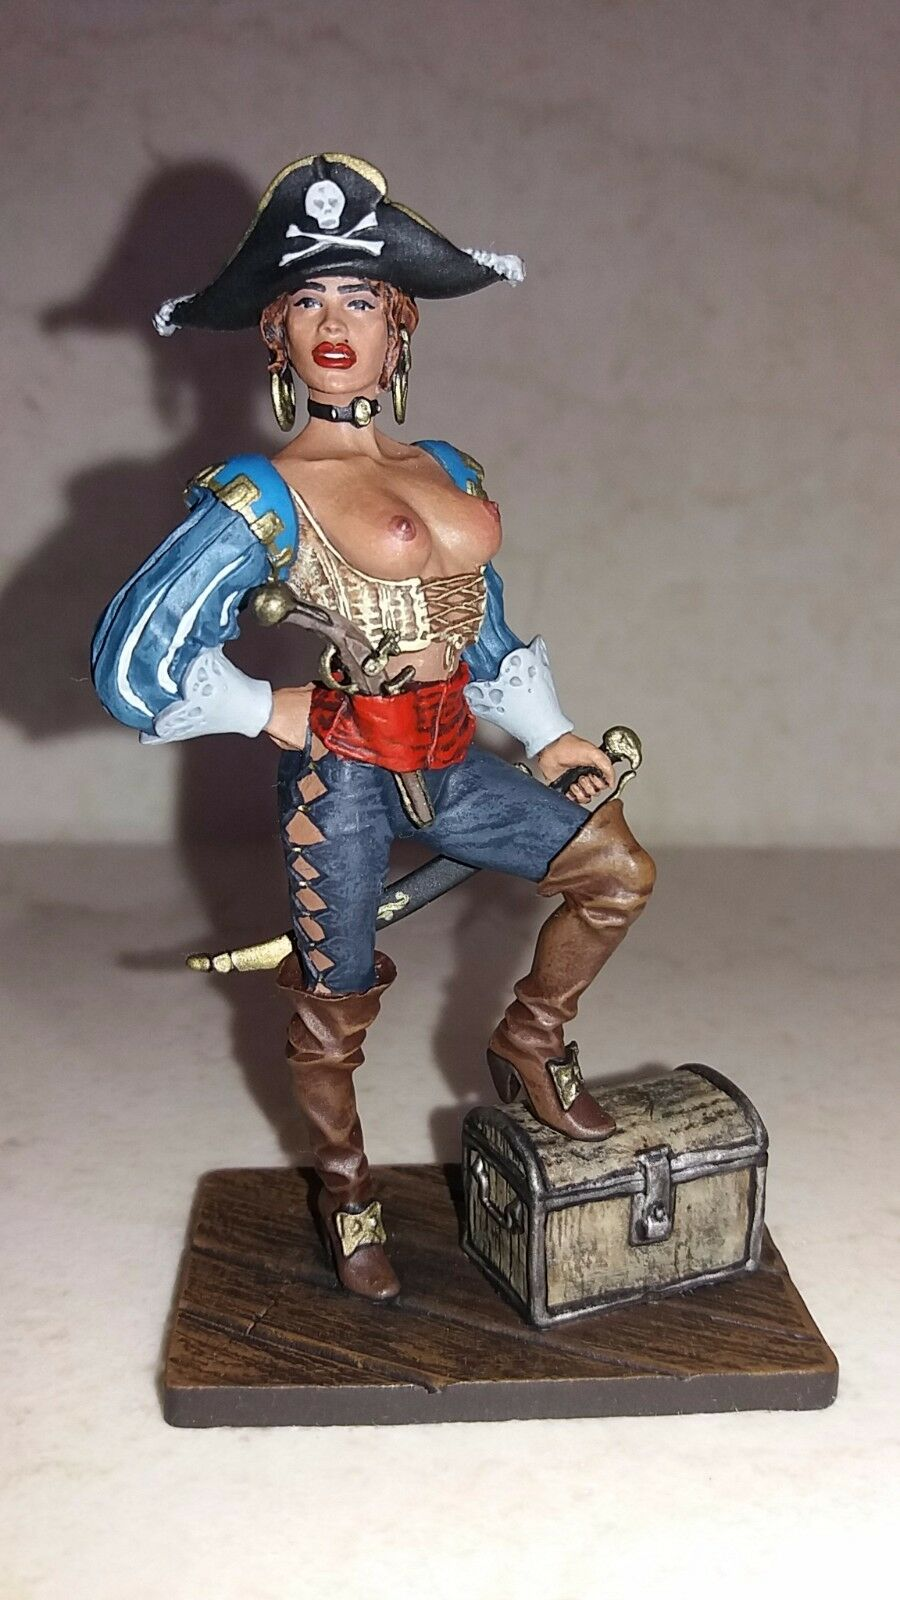 Lead soldier,Female pirate with treasure chest collectable,rare,Elite painting